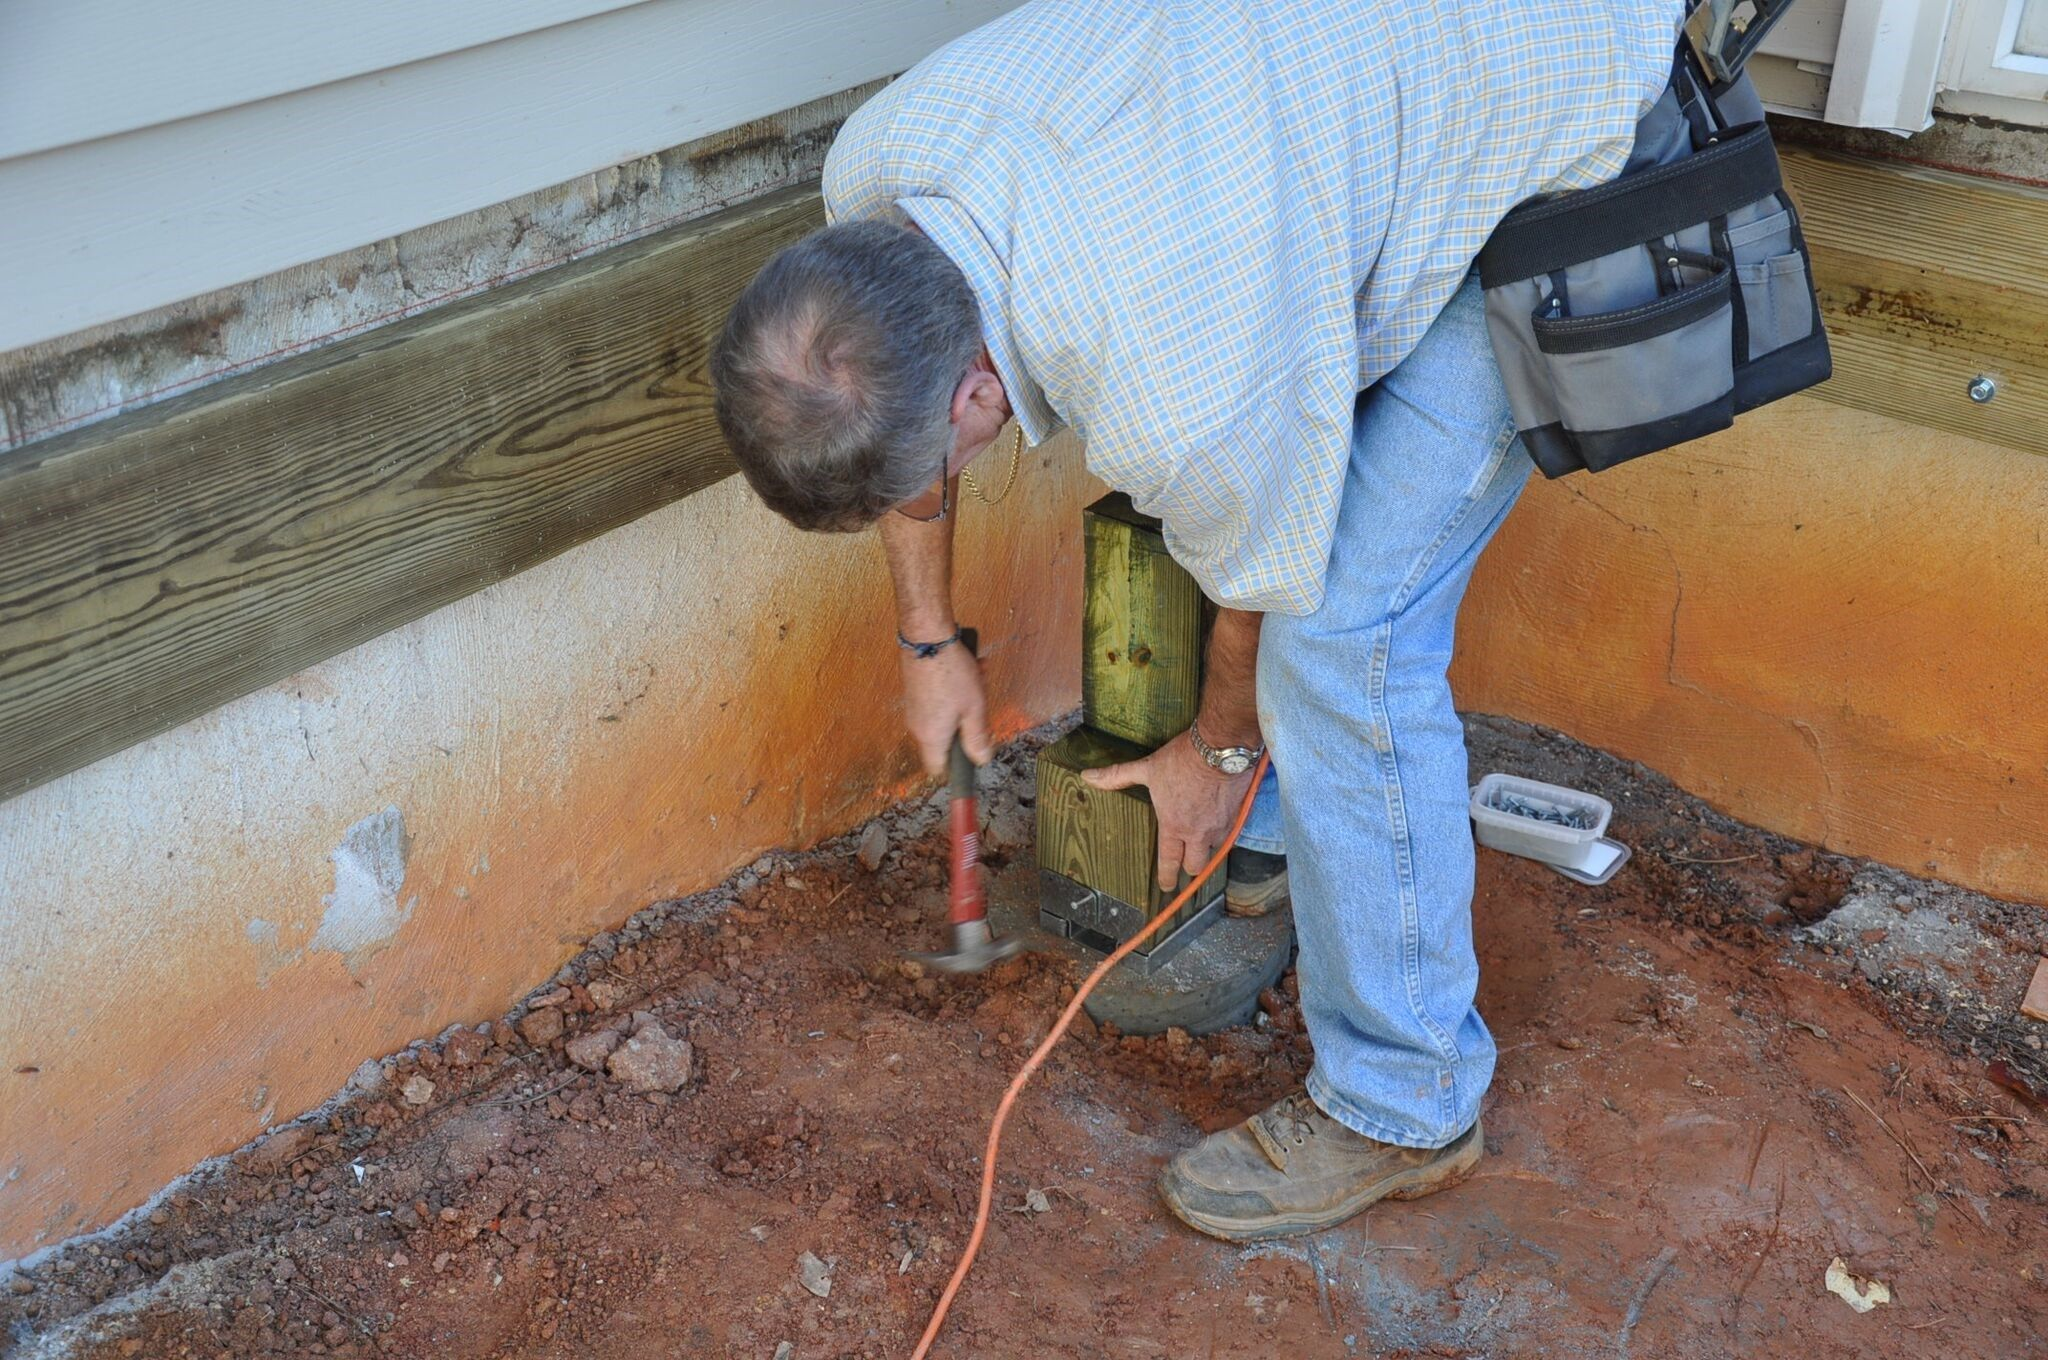 How To Attach Deck Post Bases To Concrete Footers Decks Com